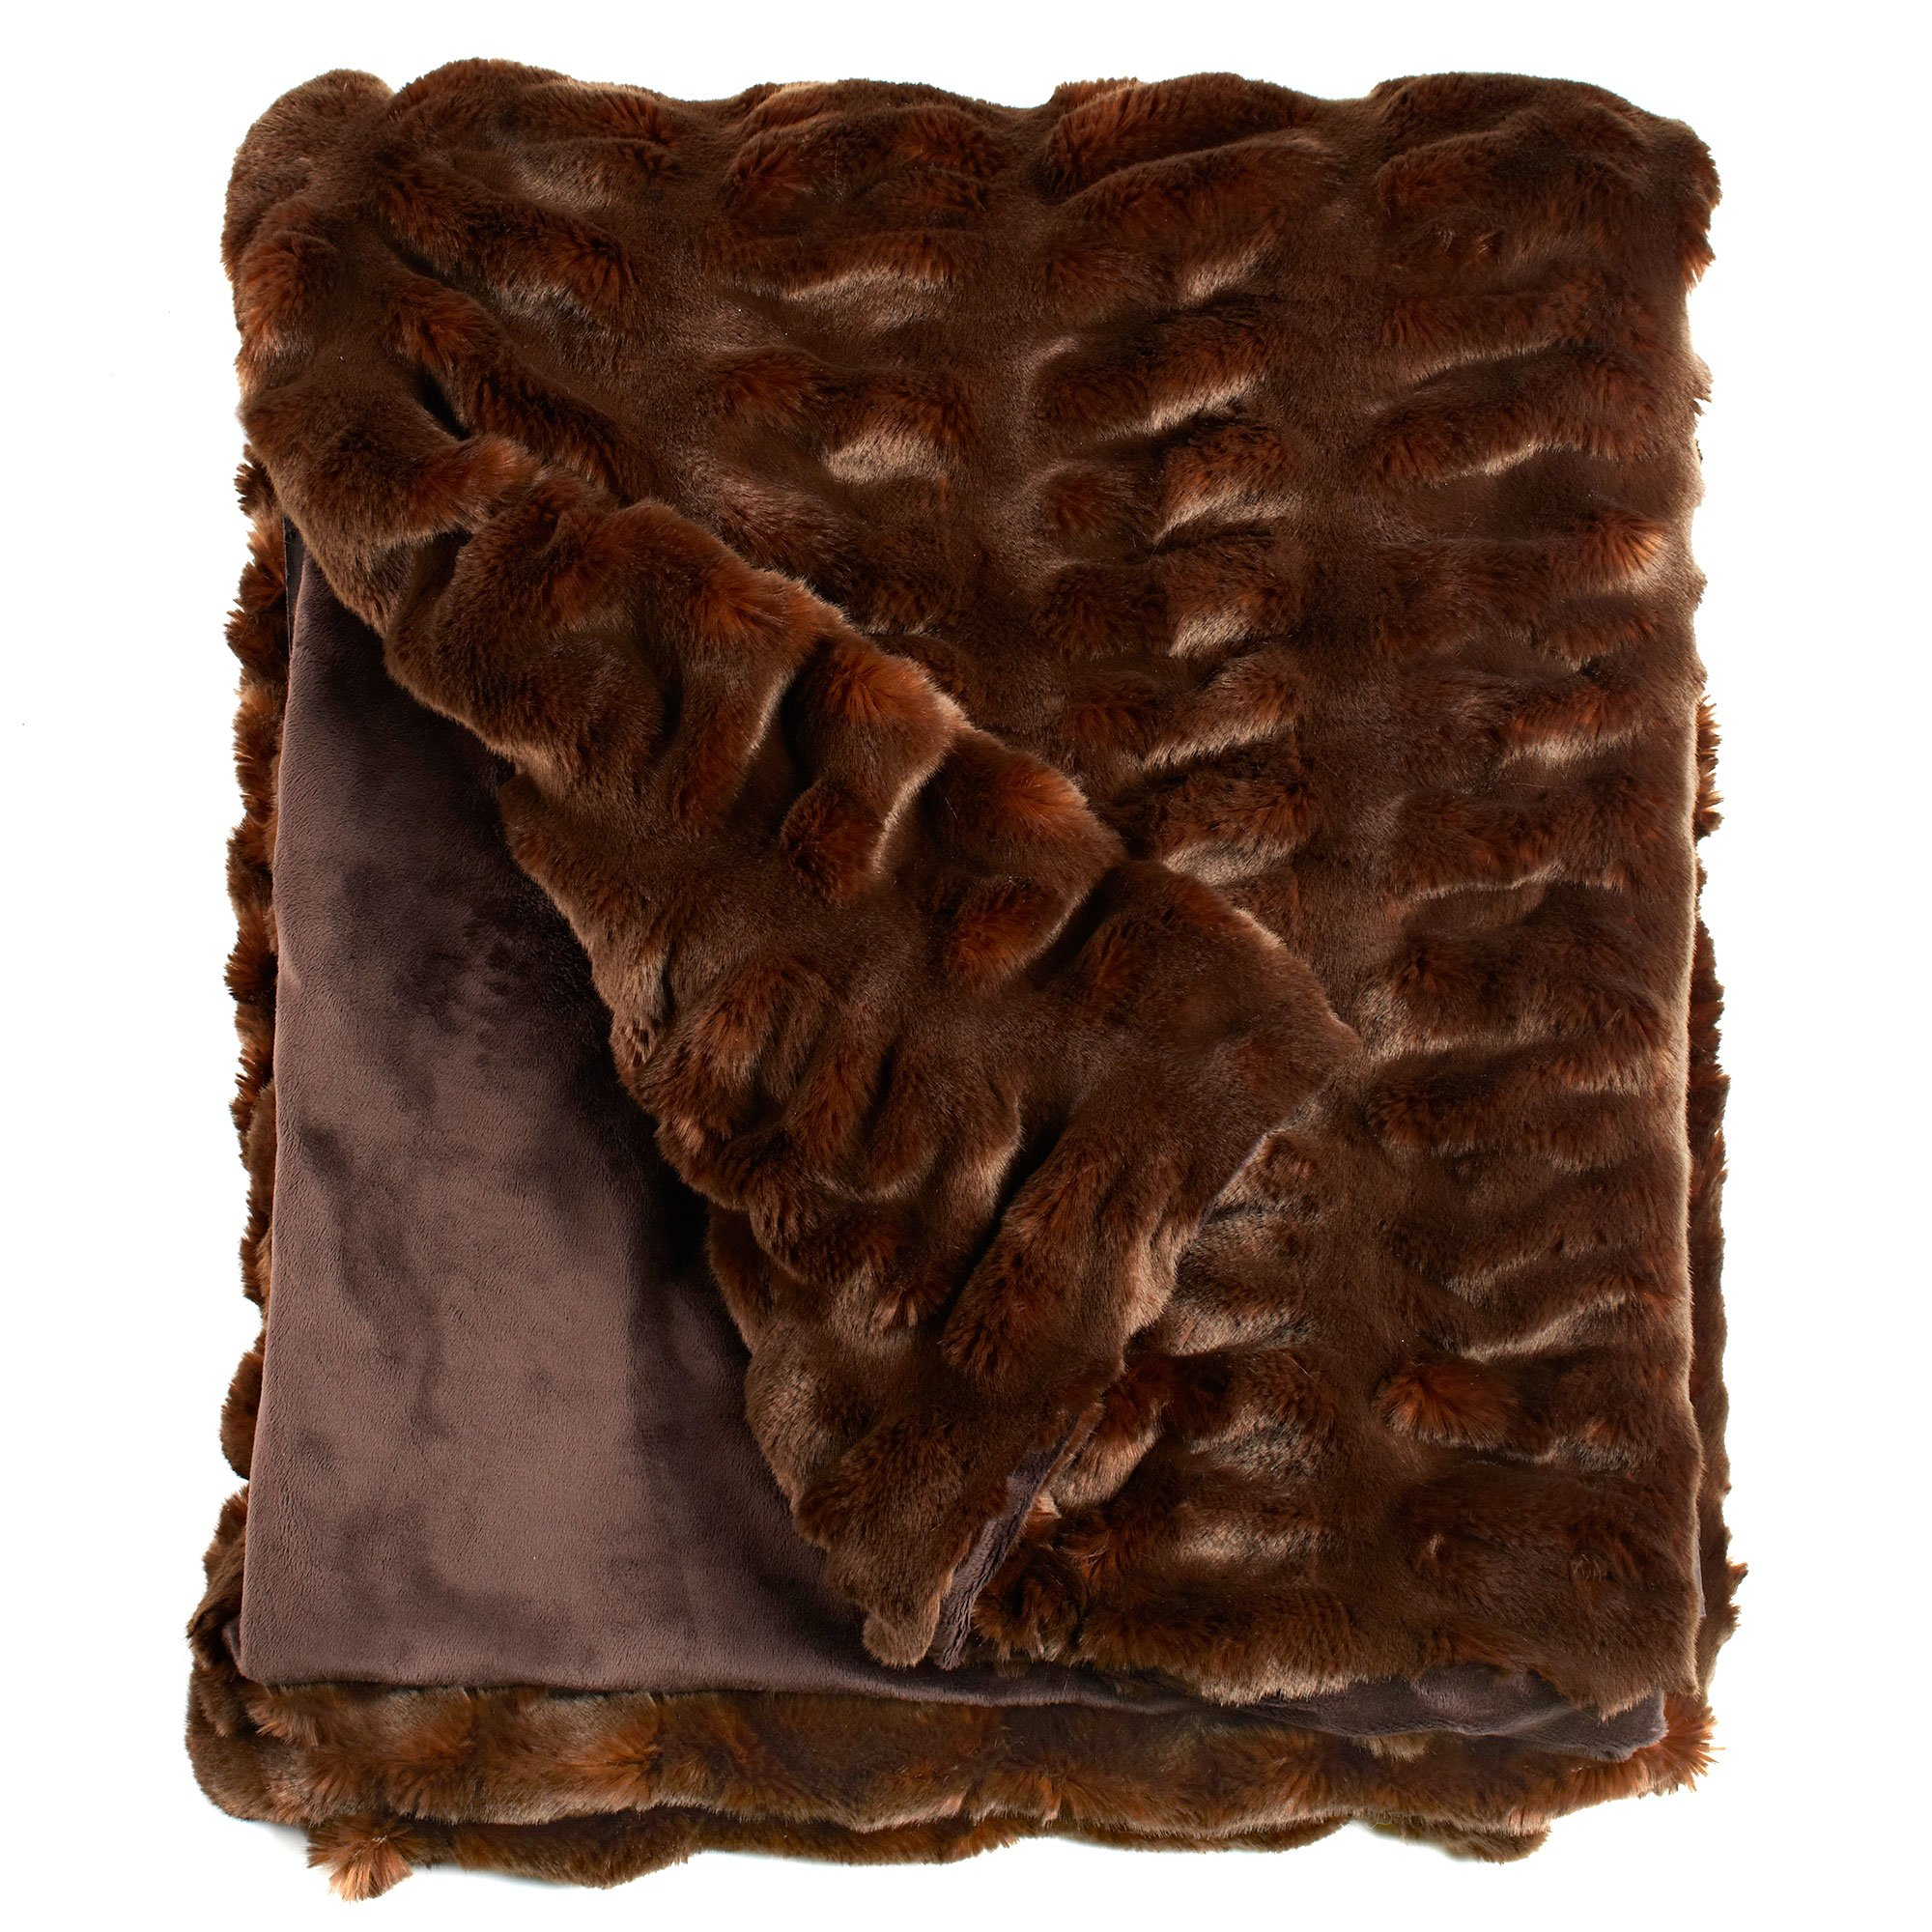 Fabulous Furs: Faux Fur Luxury Throw Blanket, Mahogany Mink, Available in generous sizes 60''x60'', 60''x72'' and 60''x86'', by Donna Salyers